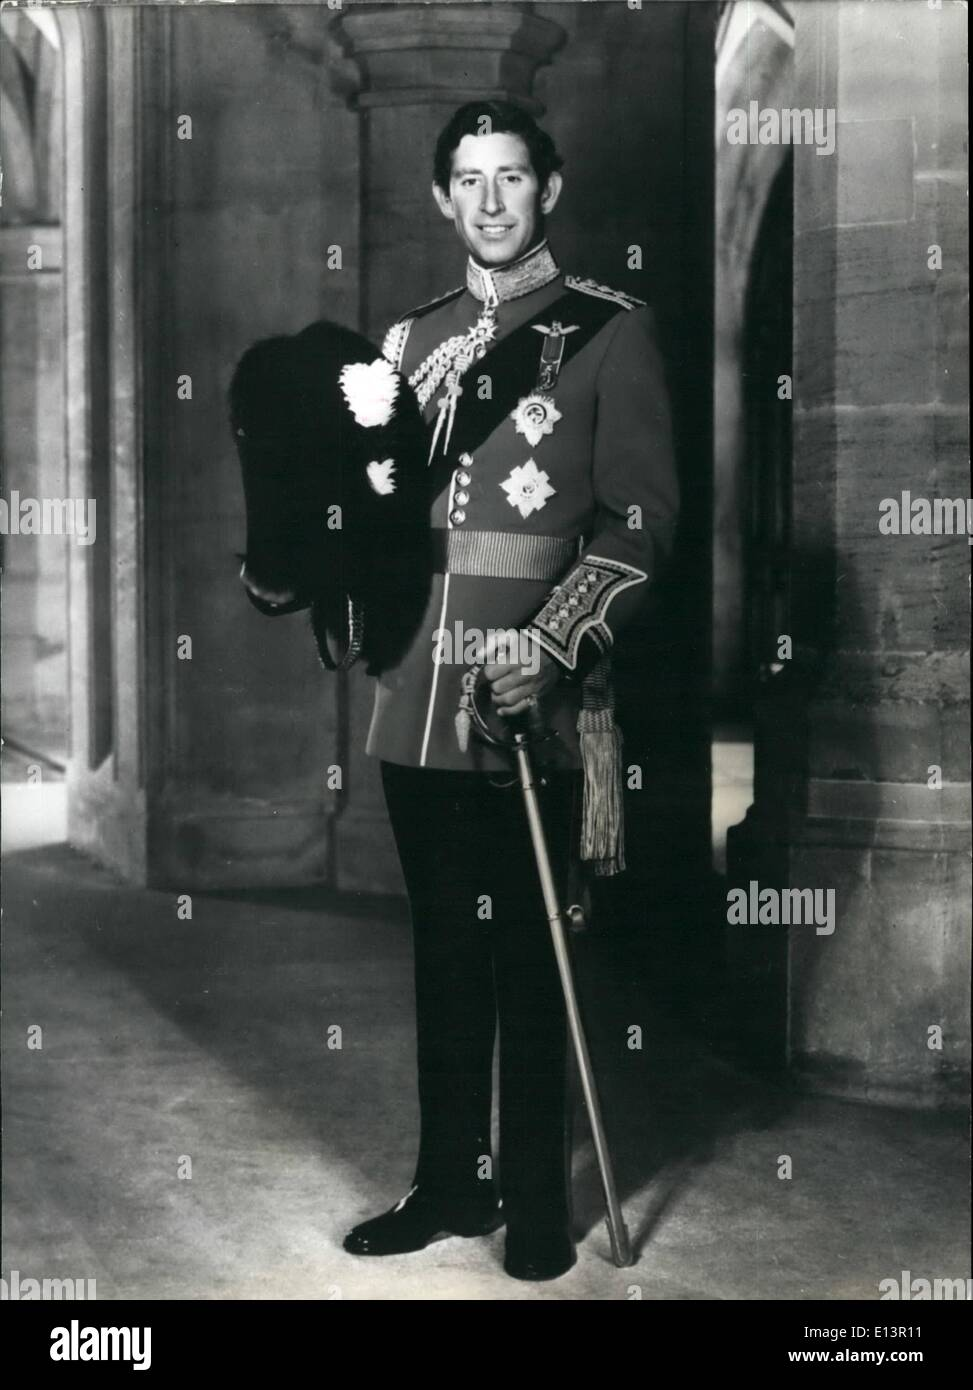 Mar. 22, 2012 - H.R.H. The Prince of Wales . : Photographed at the Grand Hall, Windsor Castle, wearing the uniform of a Colonel - Stock Image